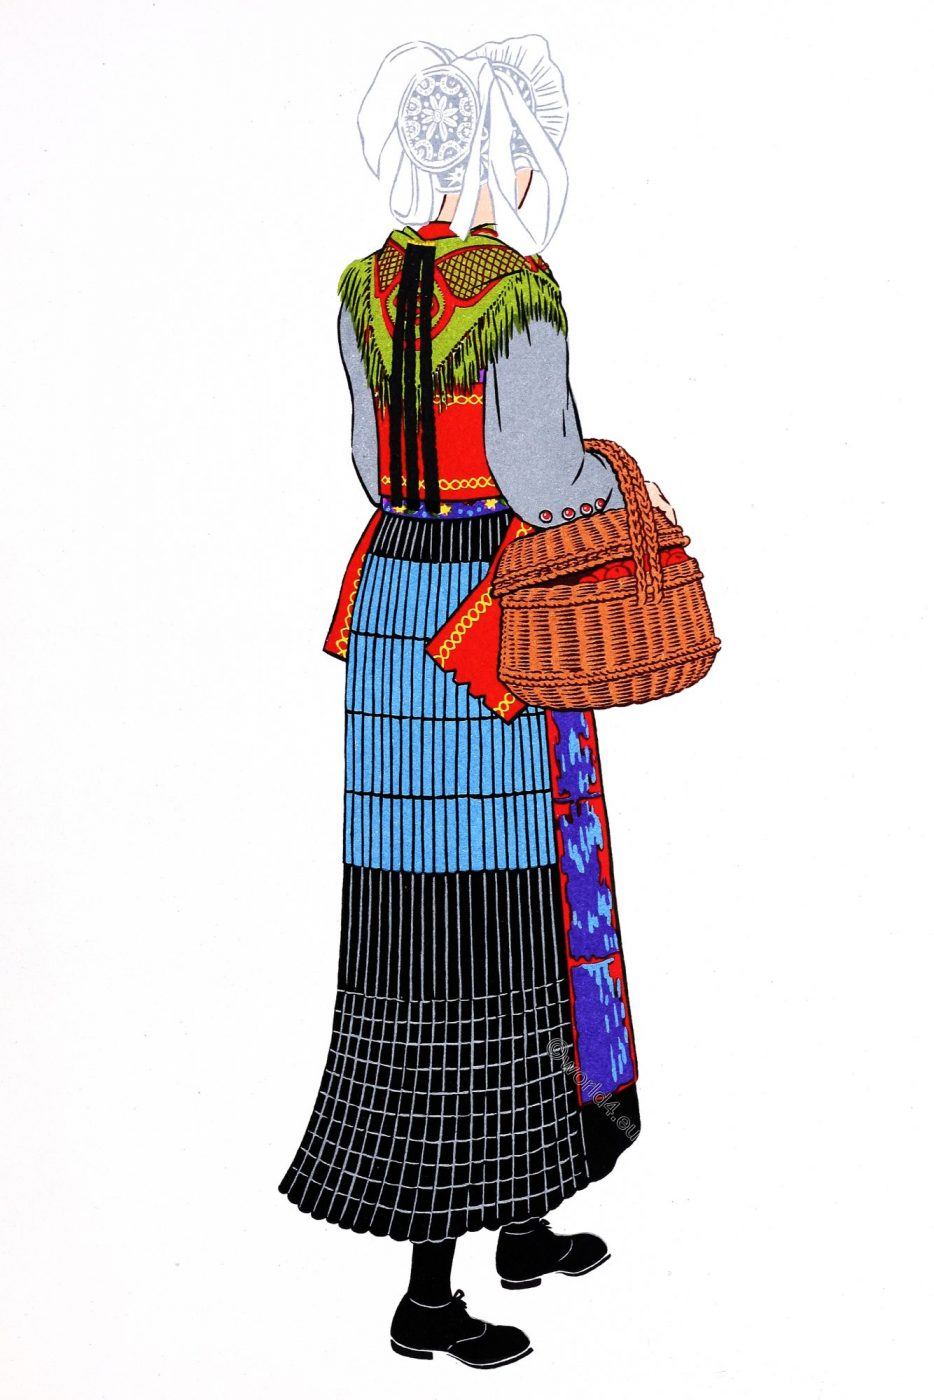 French, Traditional clothing, Savoy, costume, Saint-Jean-d'Arves,